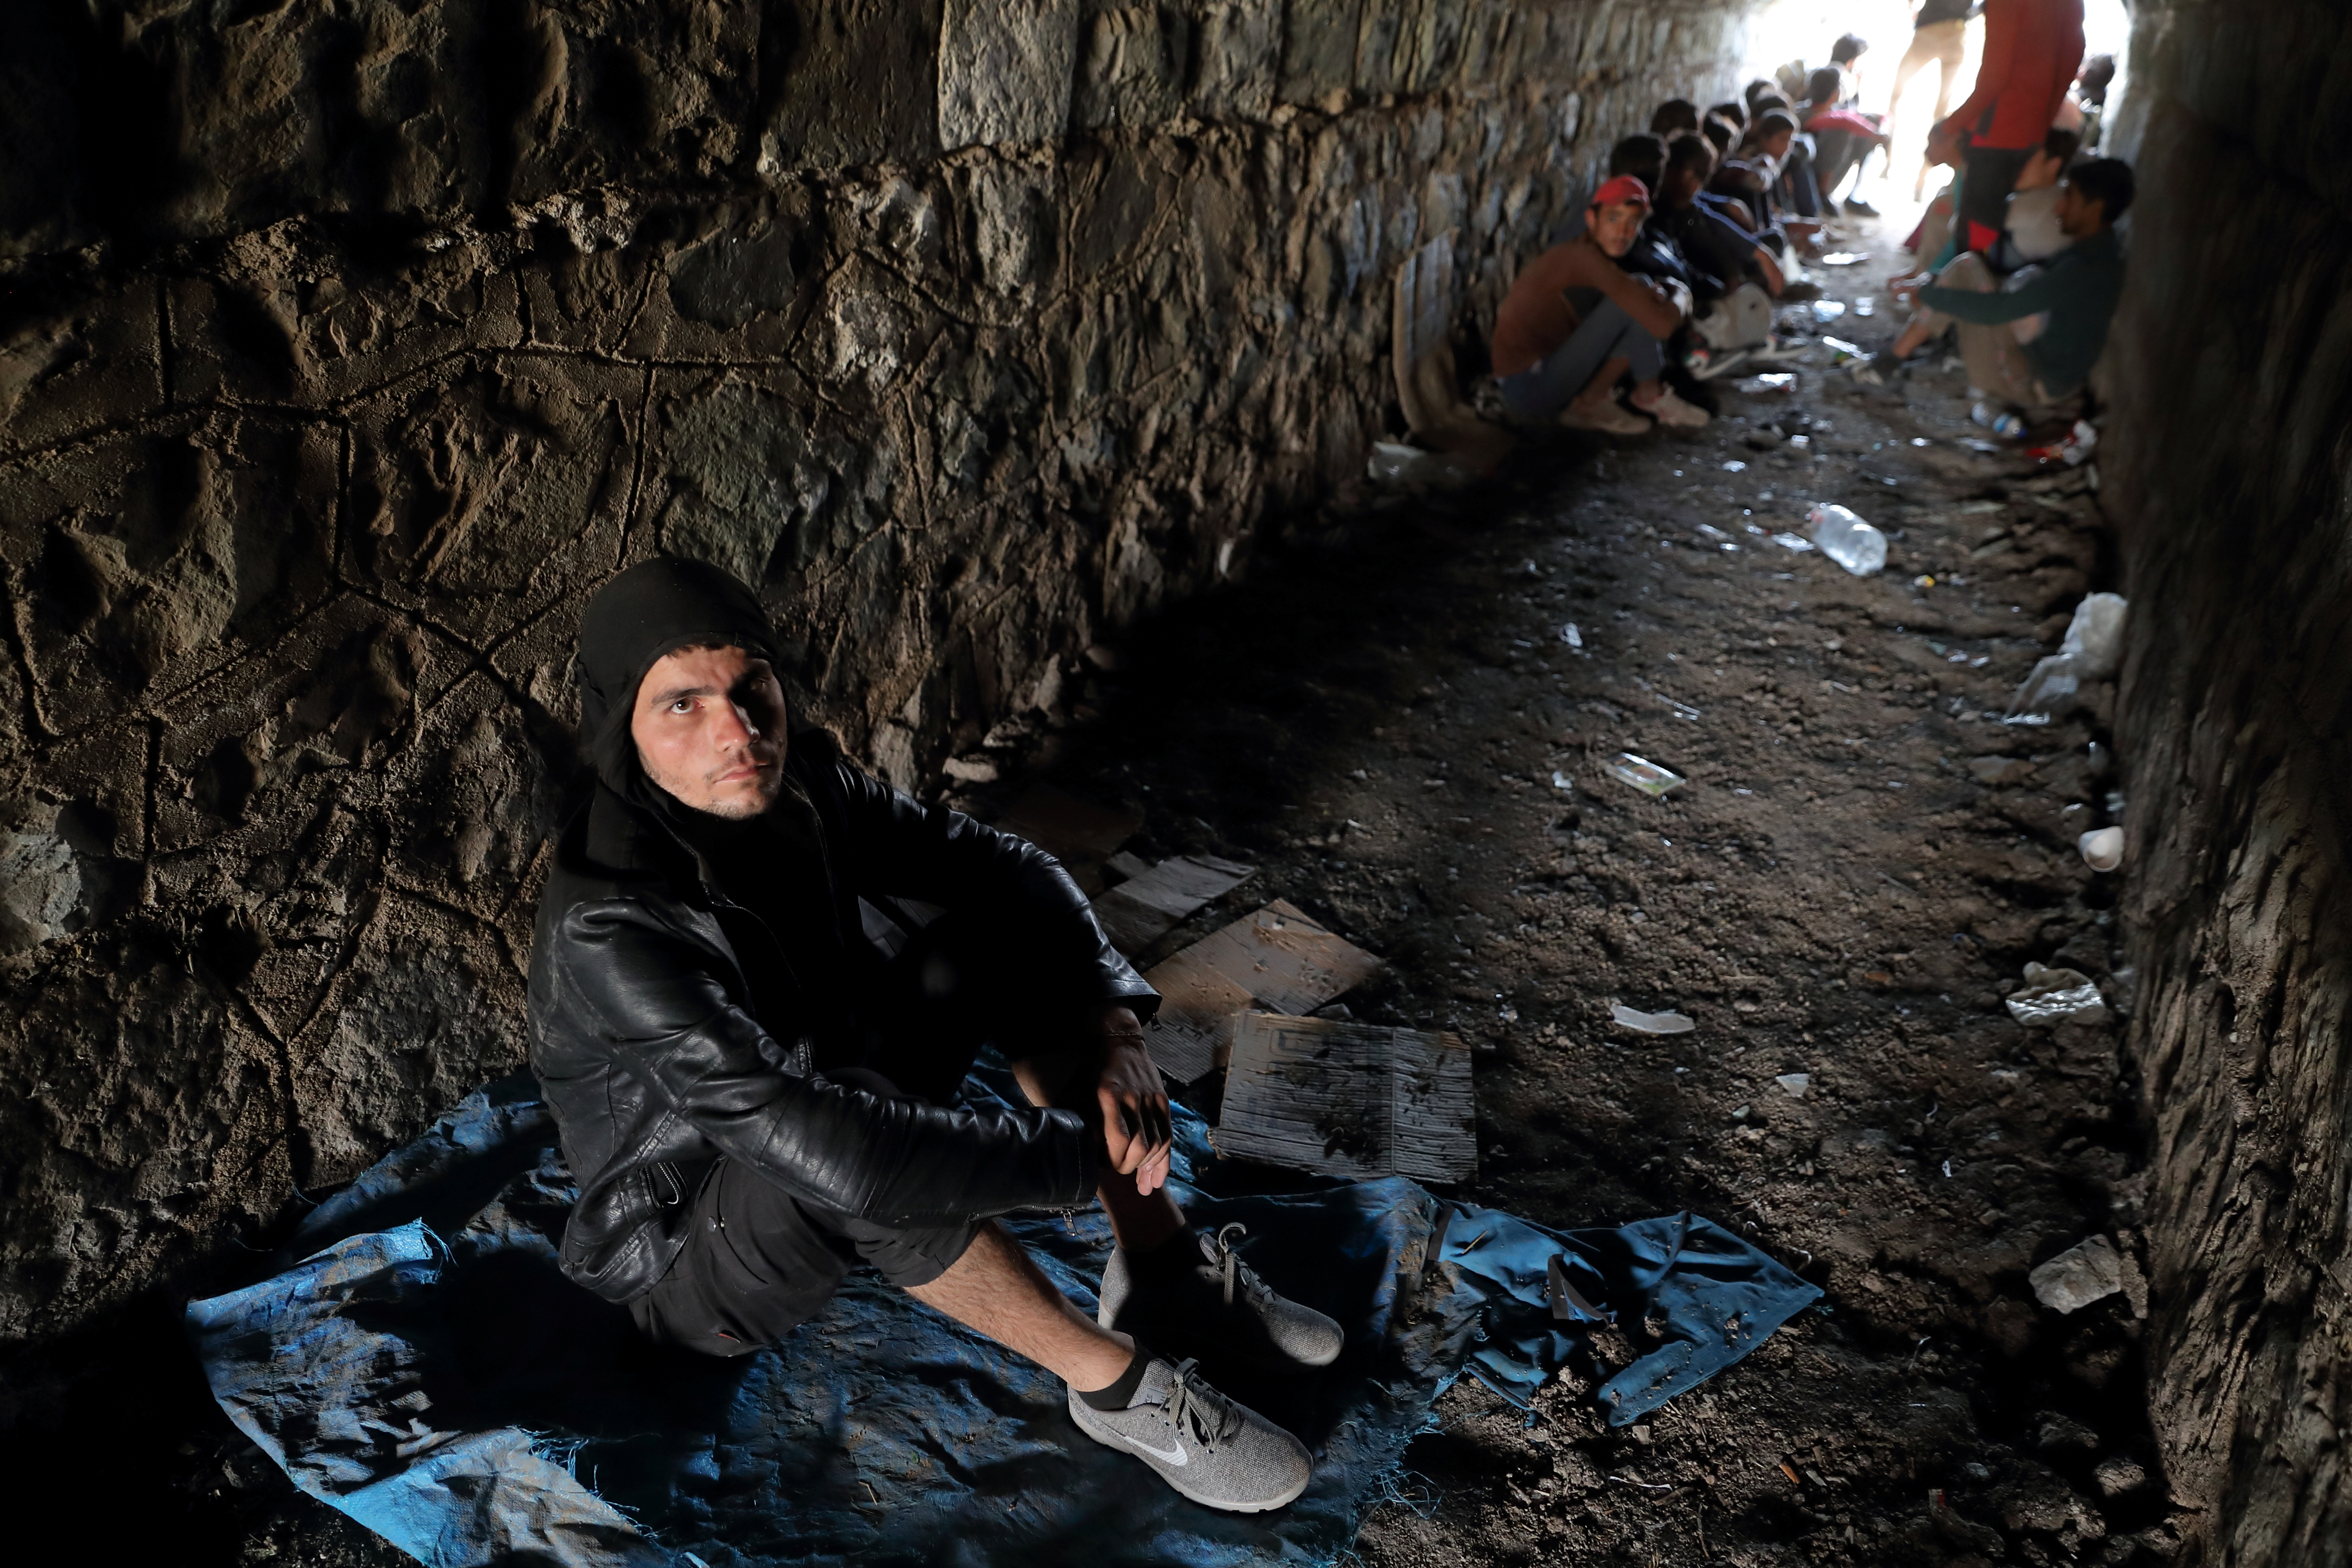 Afghan migrants hide from security forces in a tunnel under train tracks after crossing illegally into Turkey from Iran, near Tatvan in Bitlis province, Turkey August 23, 2021. Picture taken August 23, 2021. REUTERS/Murad Sezer